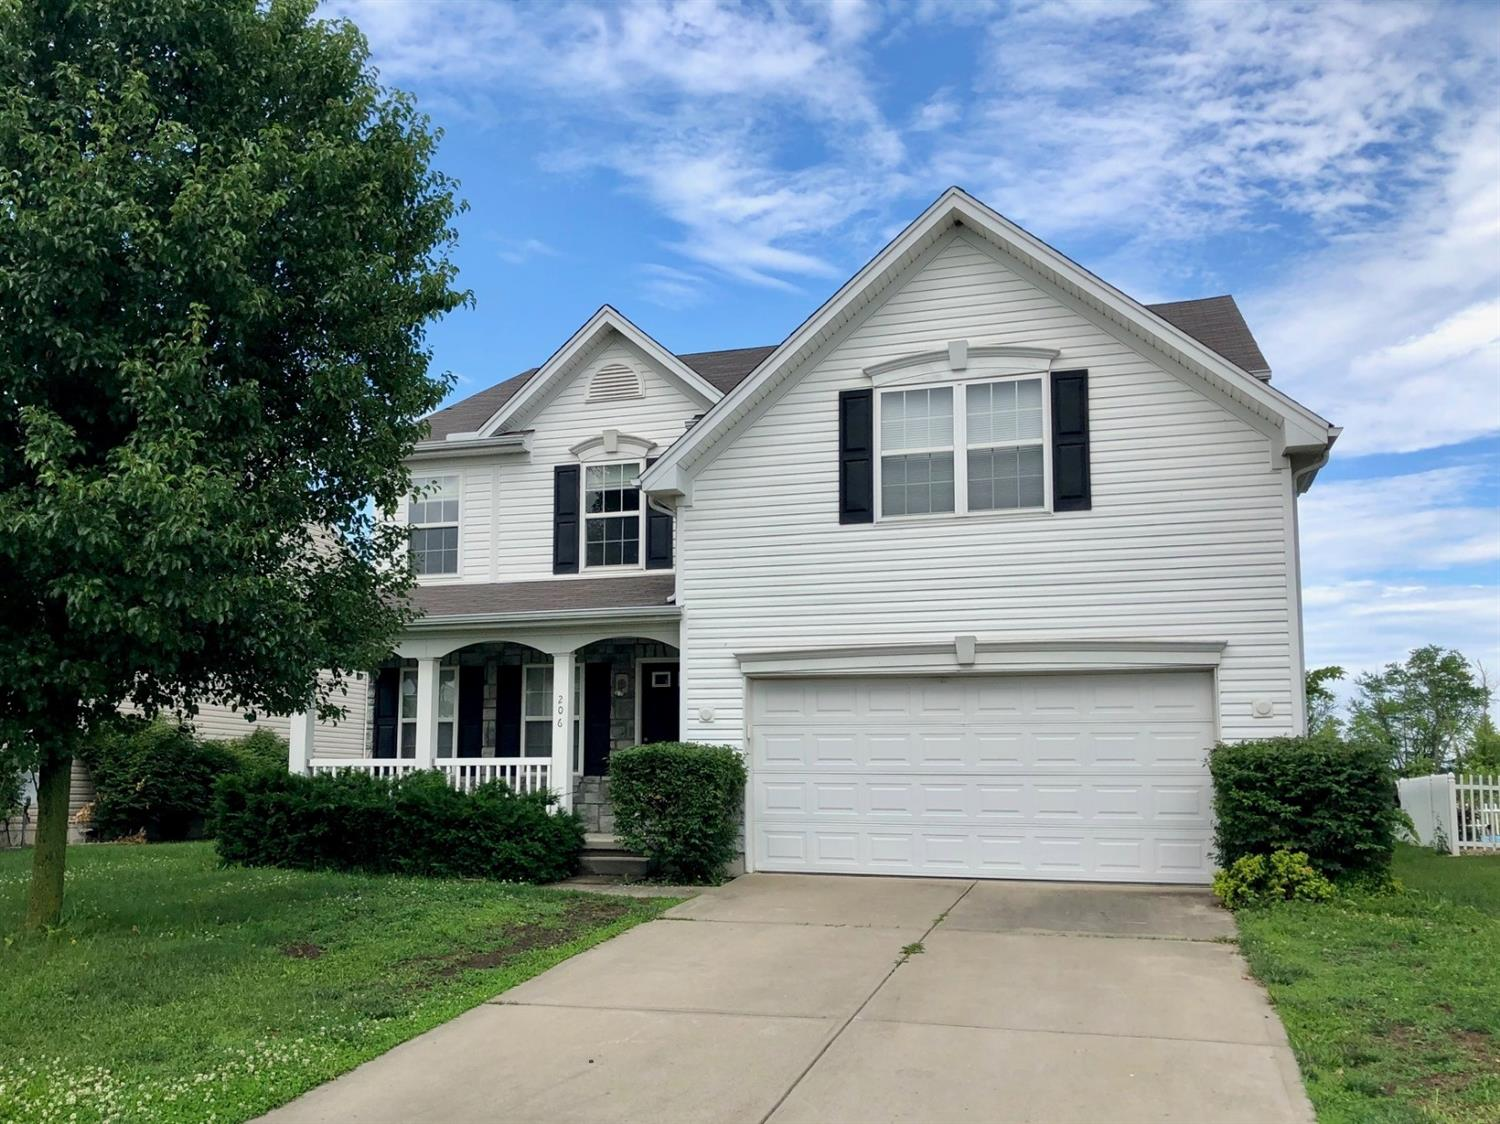 Property for sale at 206 Day Place, Trenton,  Ohio 45067